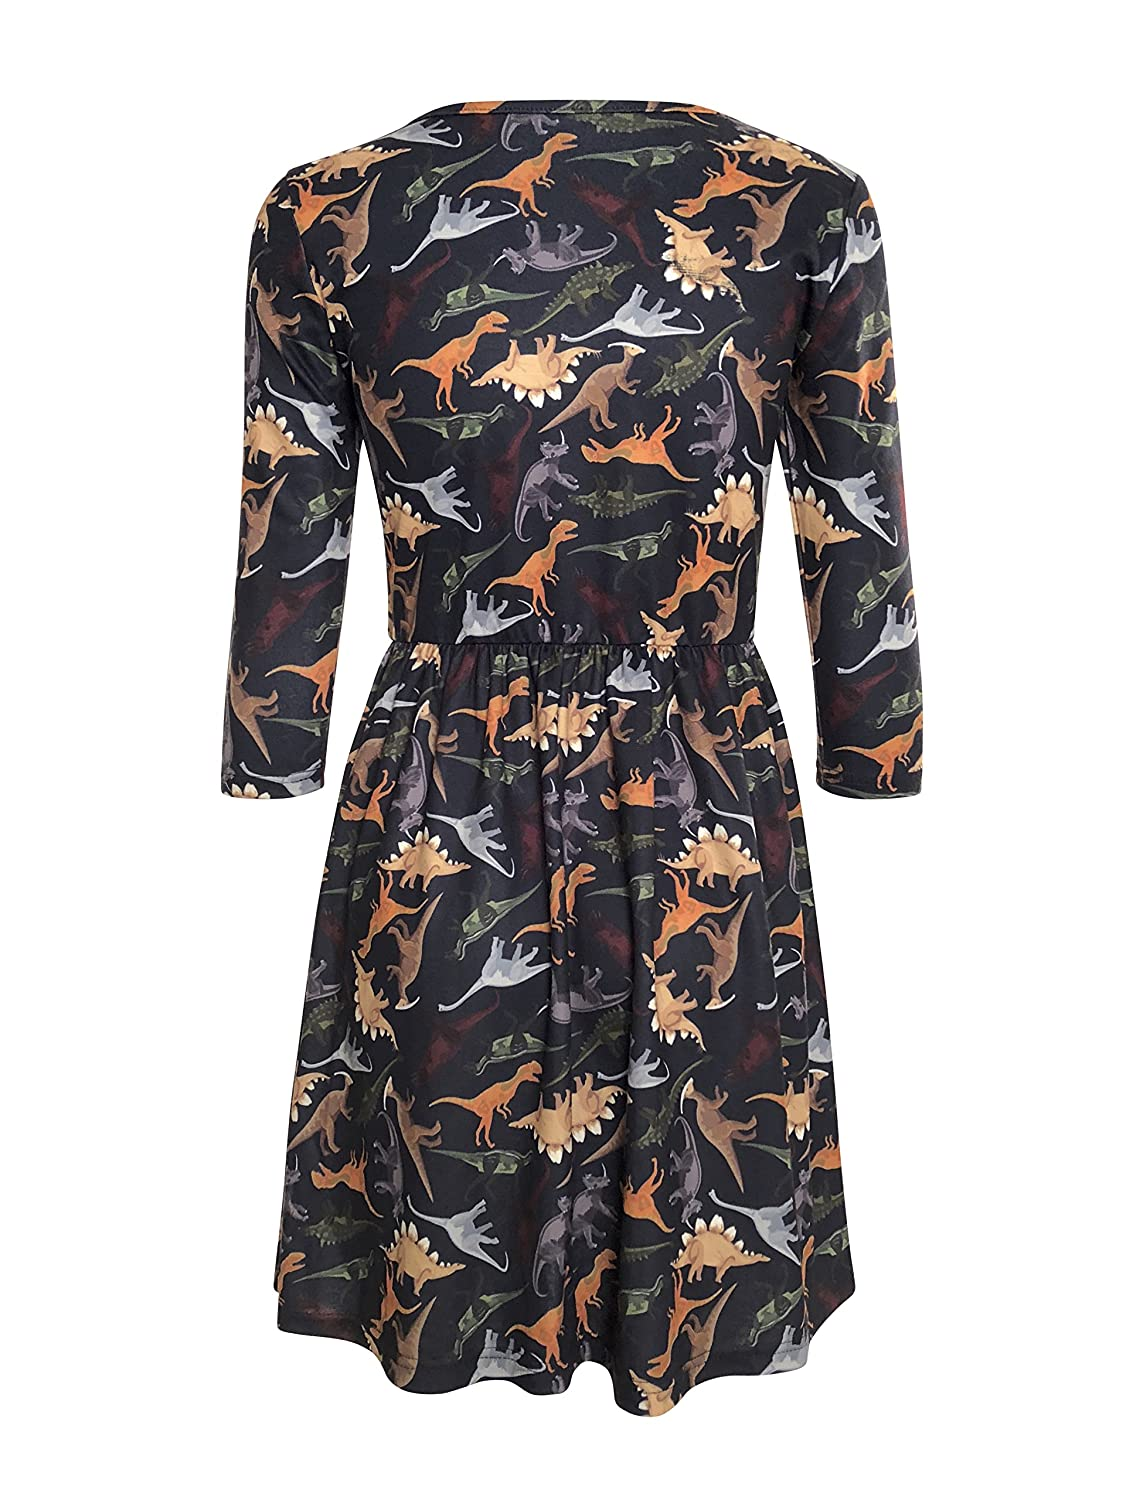 6af8282f85e LaVieLente 3/4 Sleeve High Waist Jersey Fabric Dinosaur Dress with Elastic  Waist at Amazon Women's Clothing store: